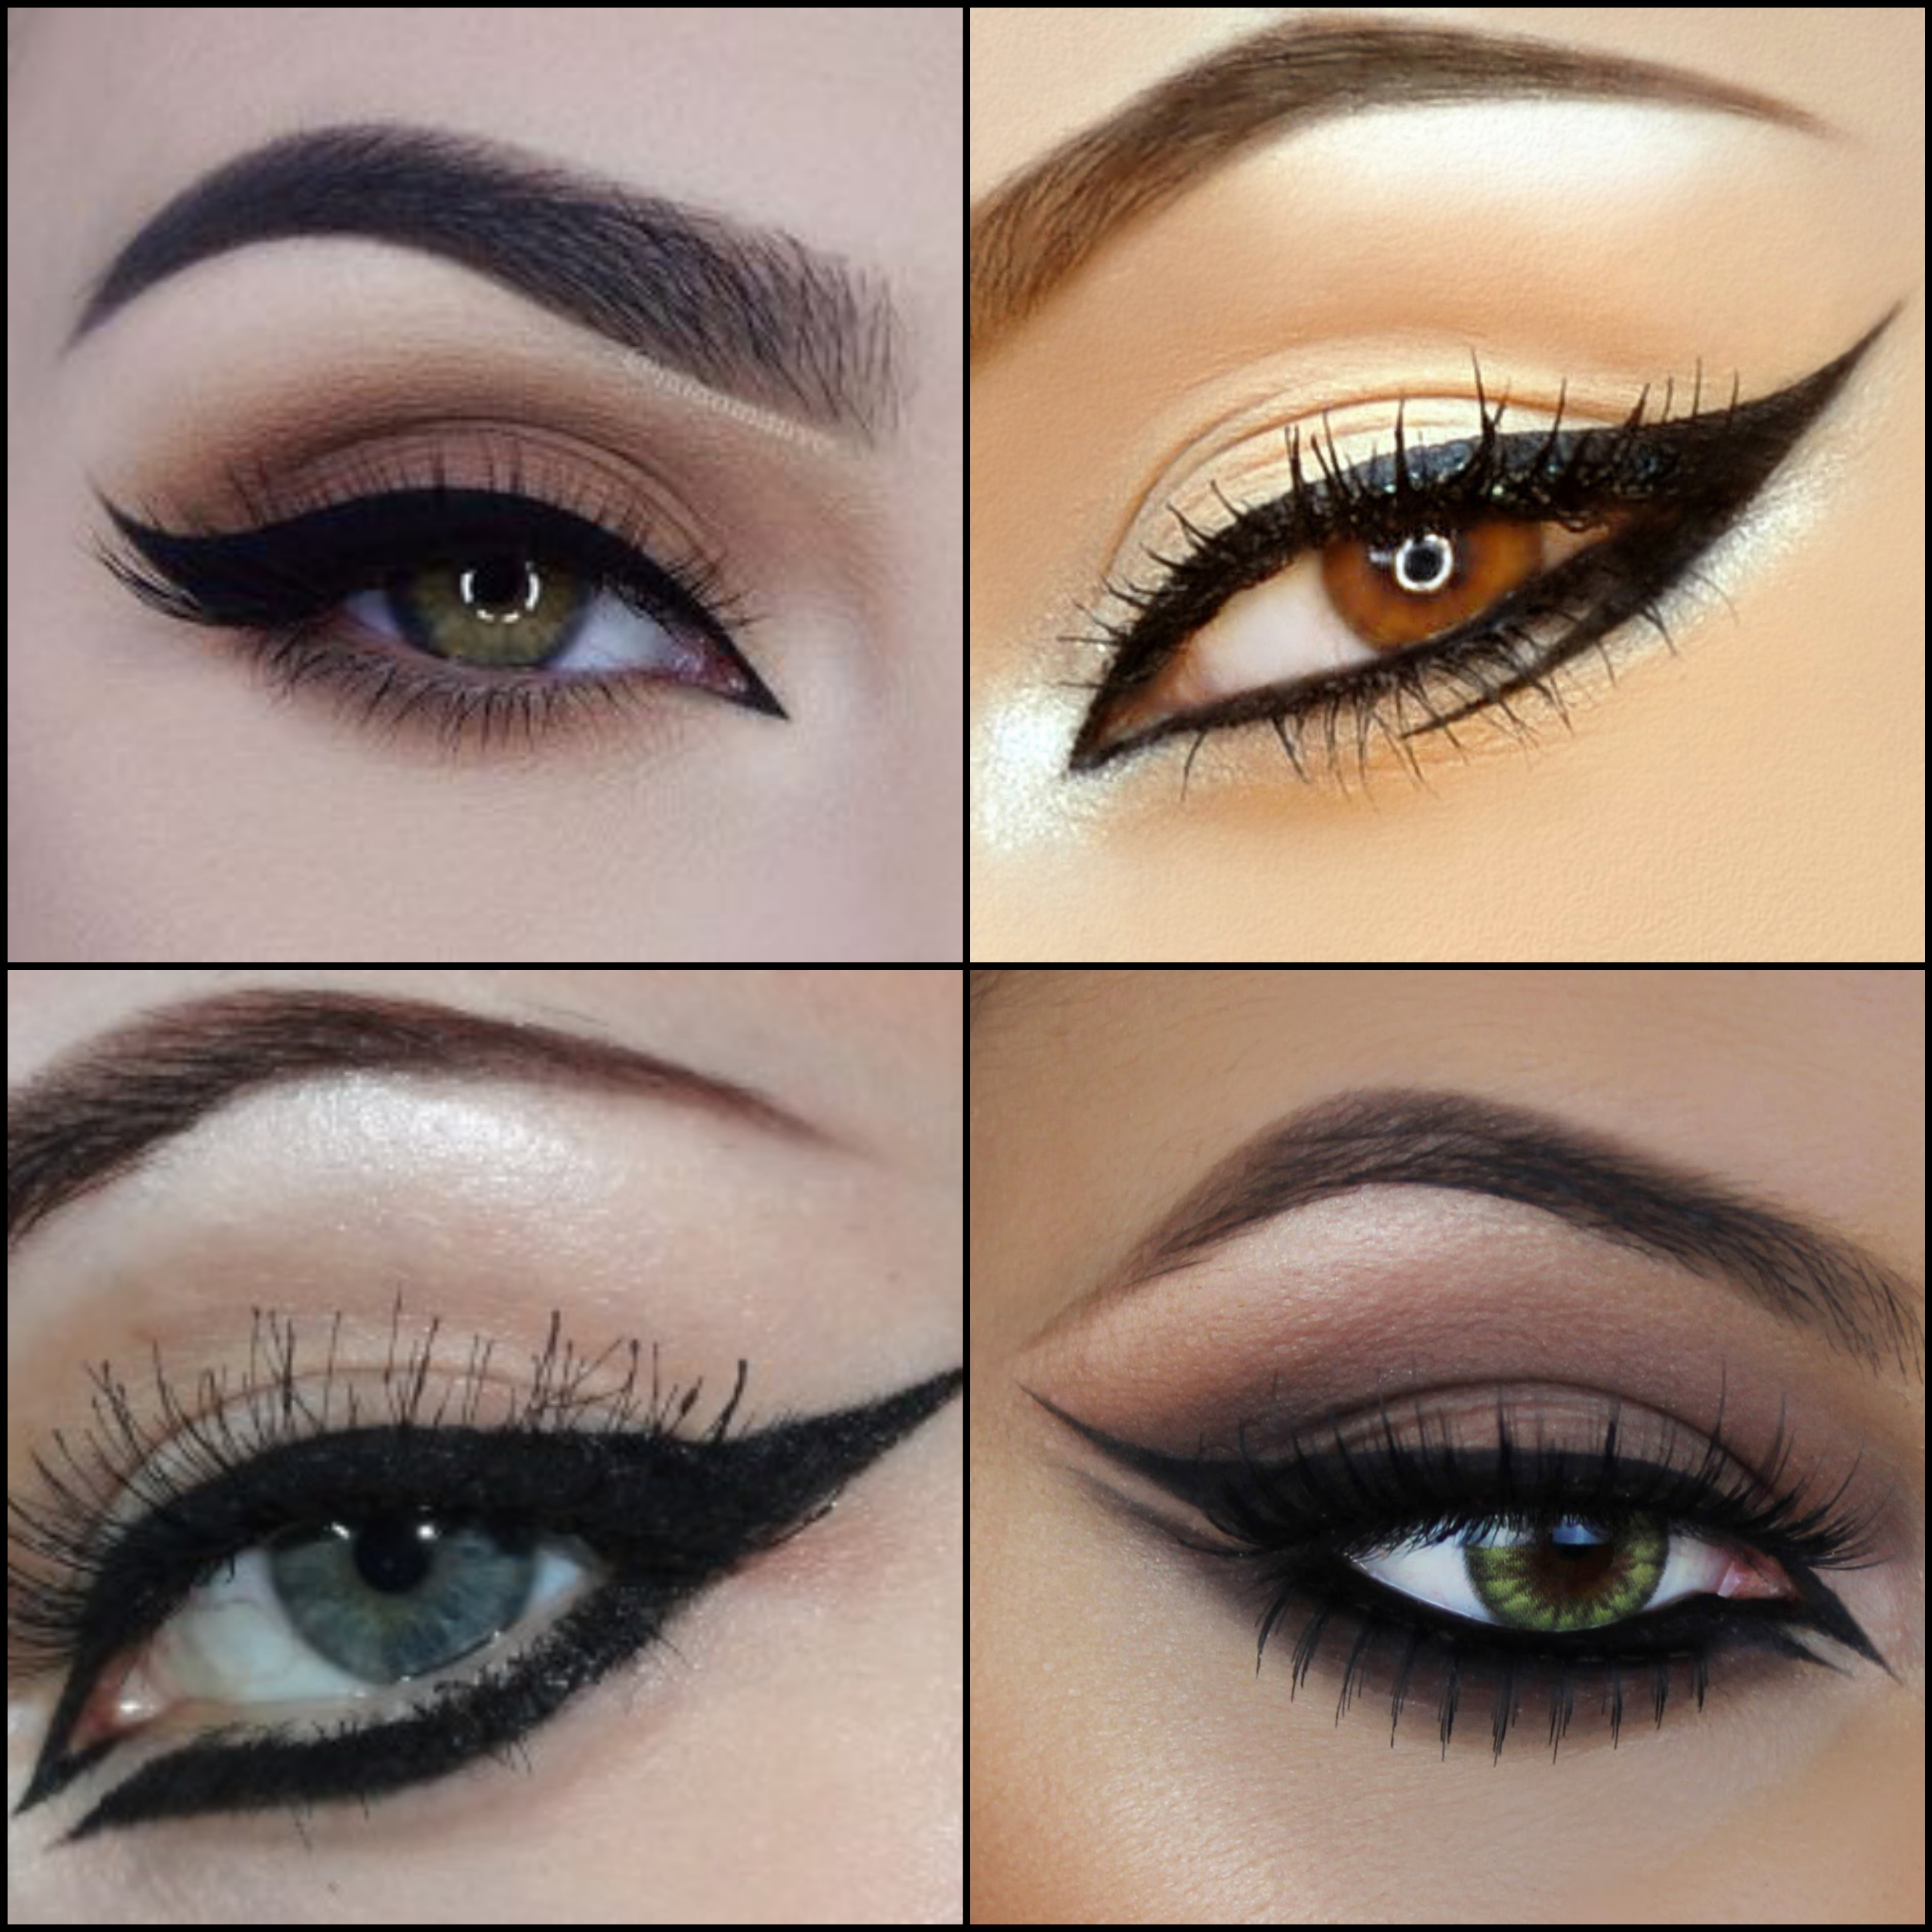 Not To Miss Difference Between Winged And Cat Eyeliner